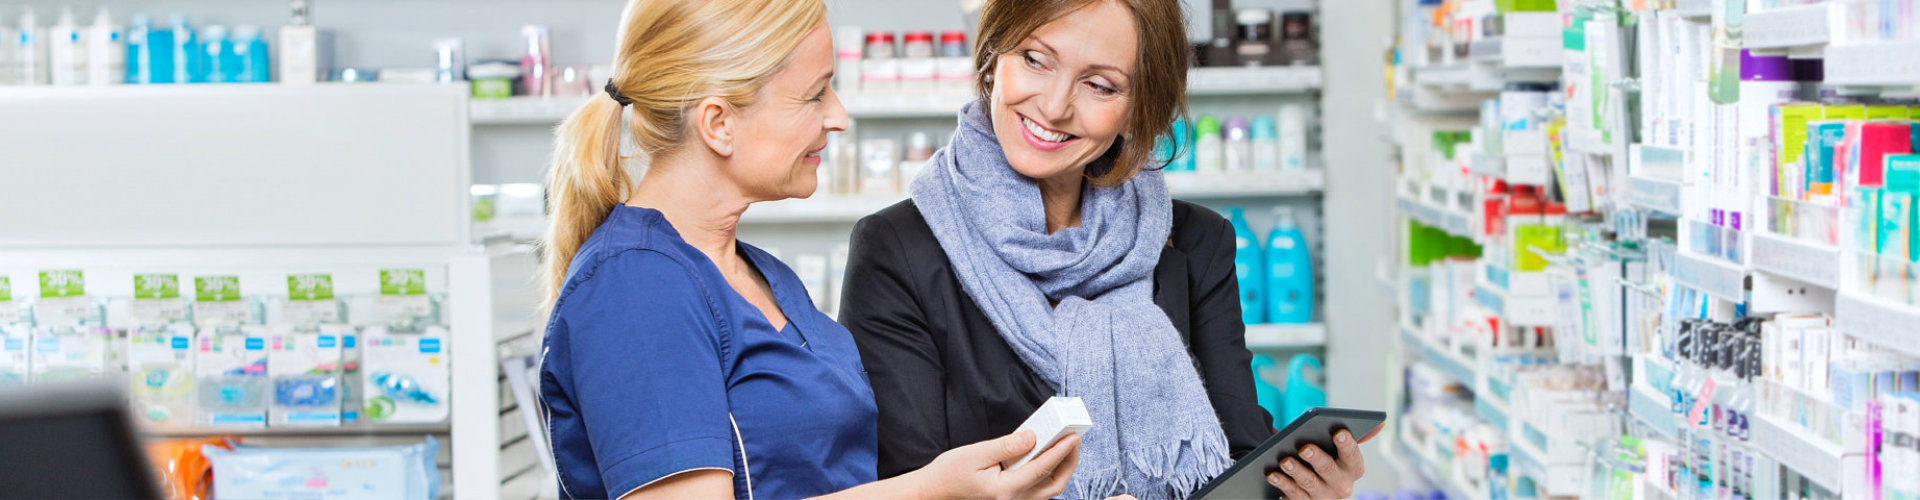 pharmacist and customer smiling at each other